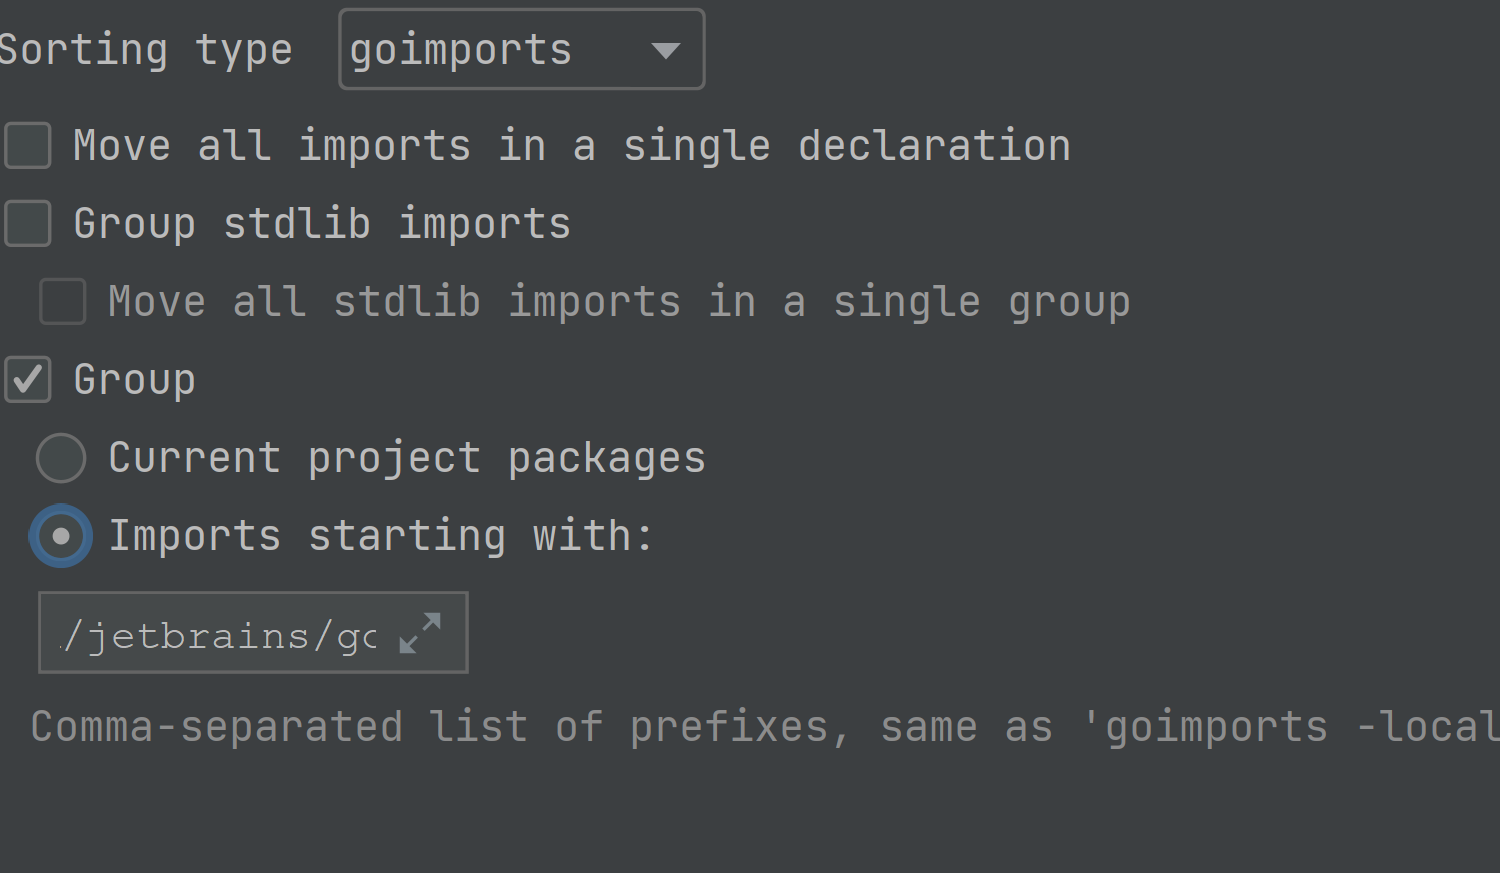 Configure goimports -local support in the IDE